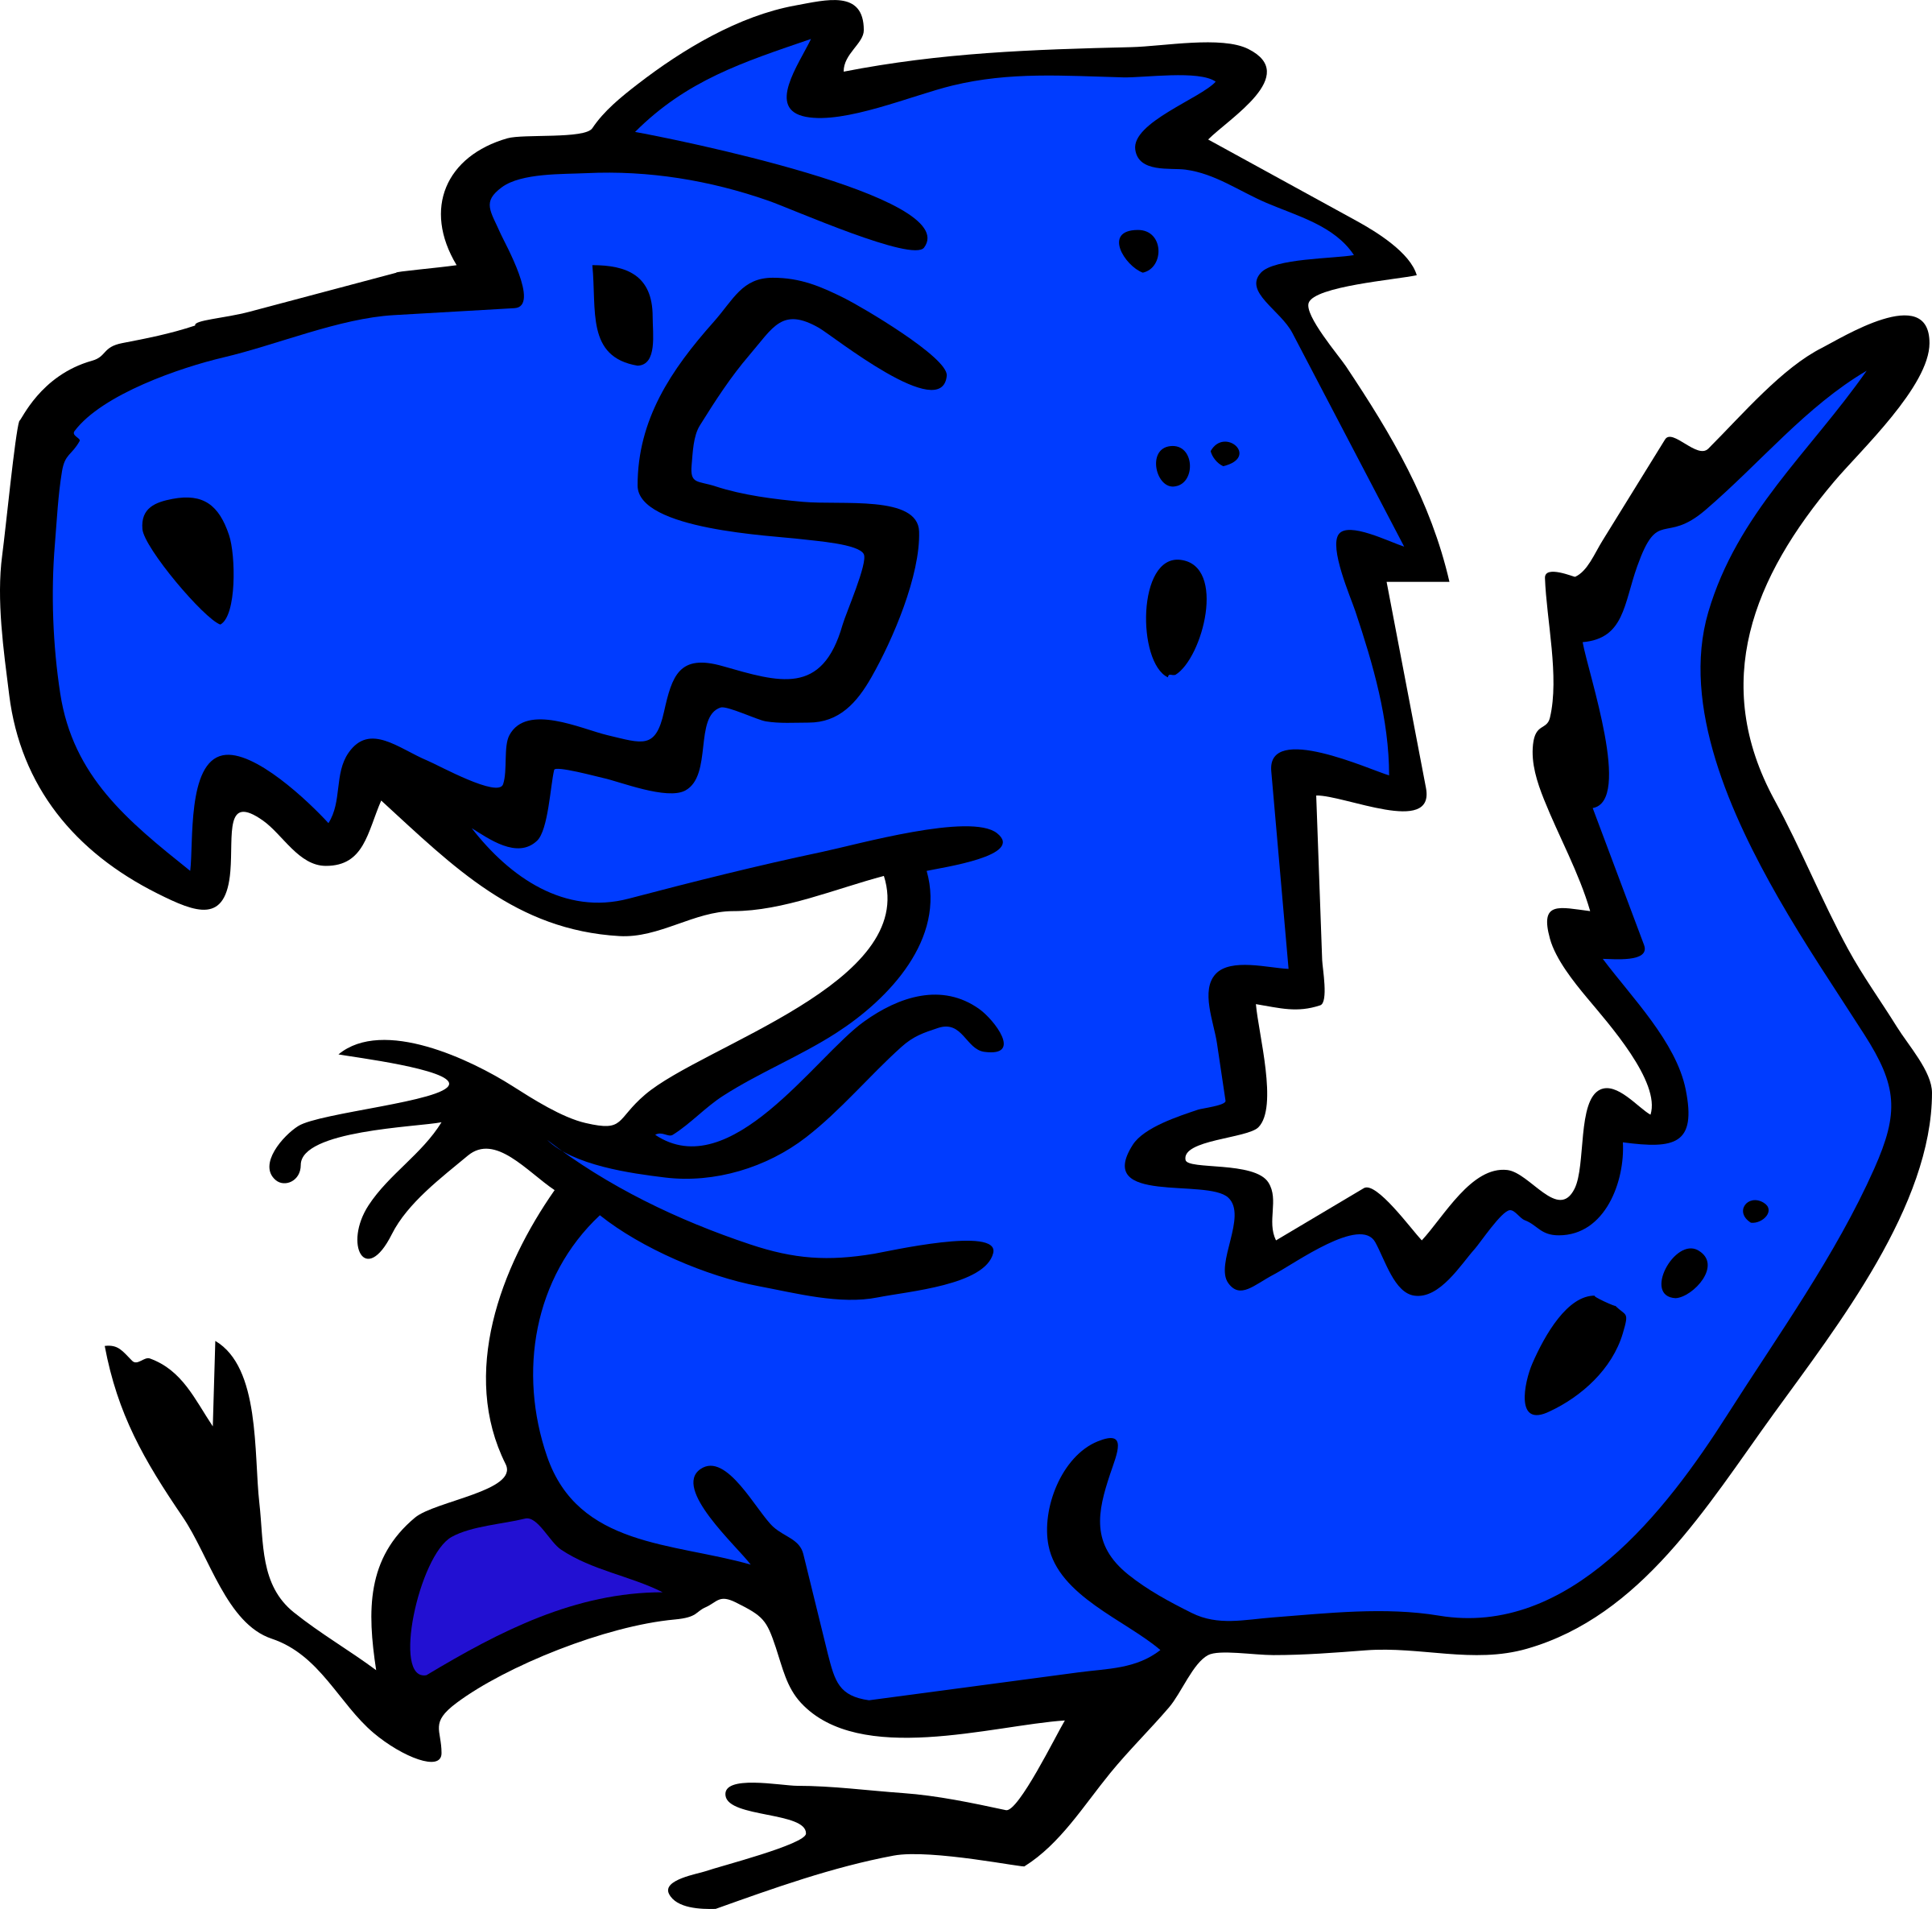 Blue Dinosaur by francesco_rollandin